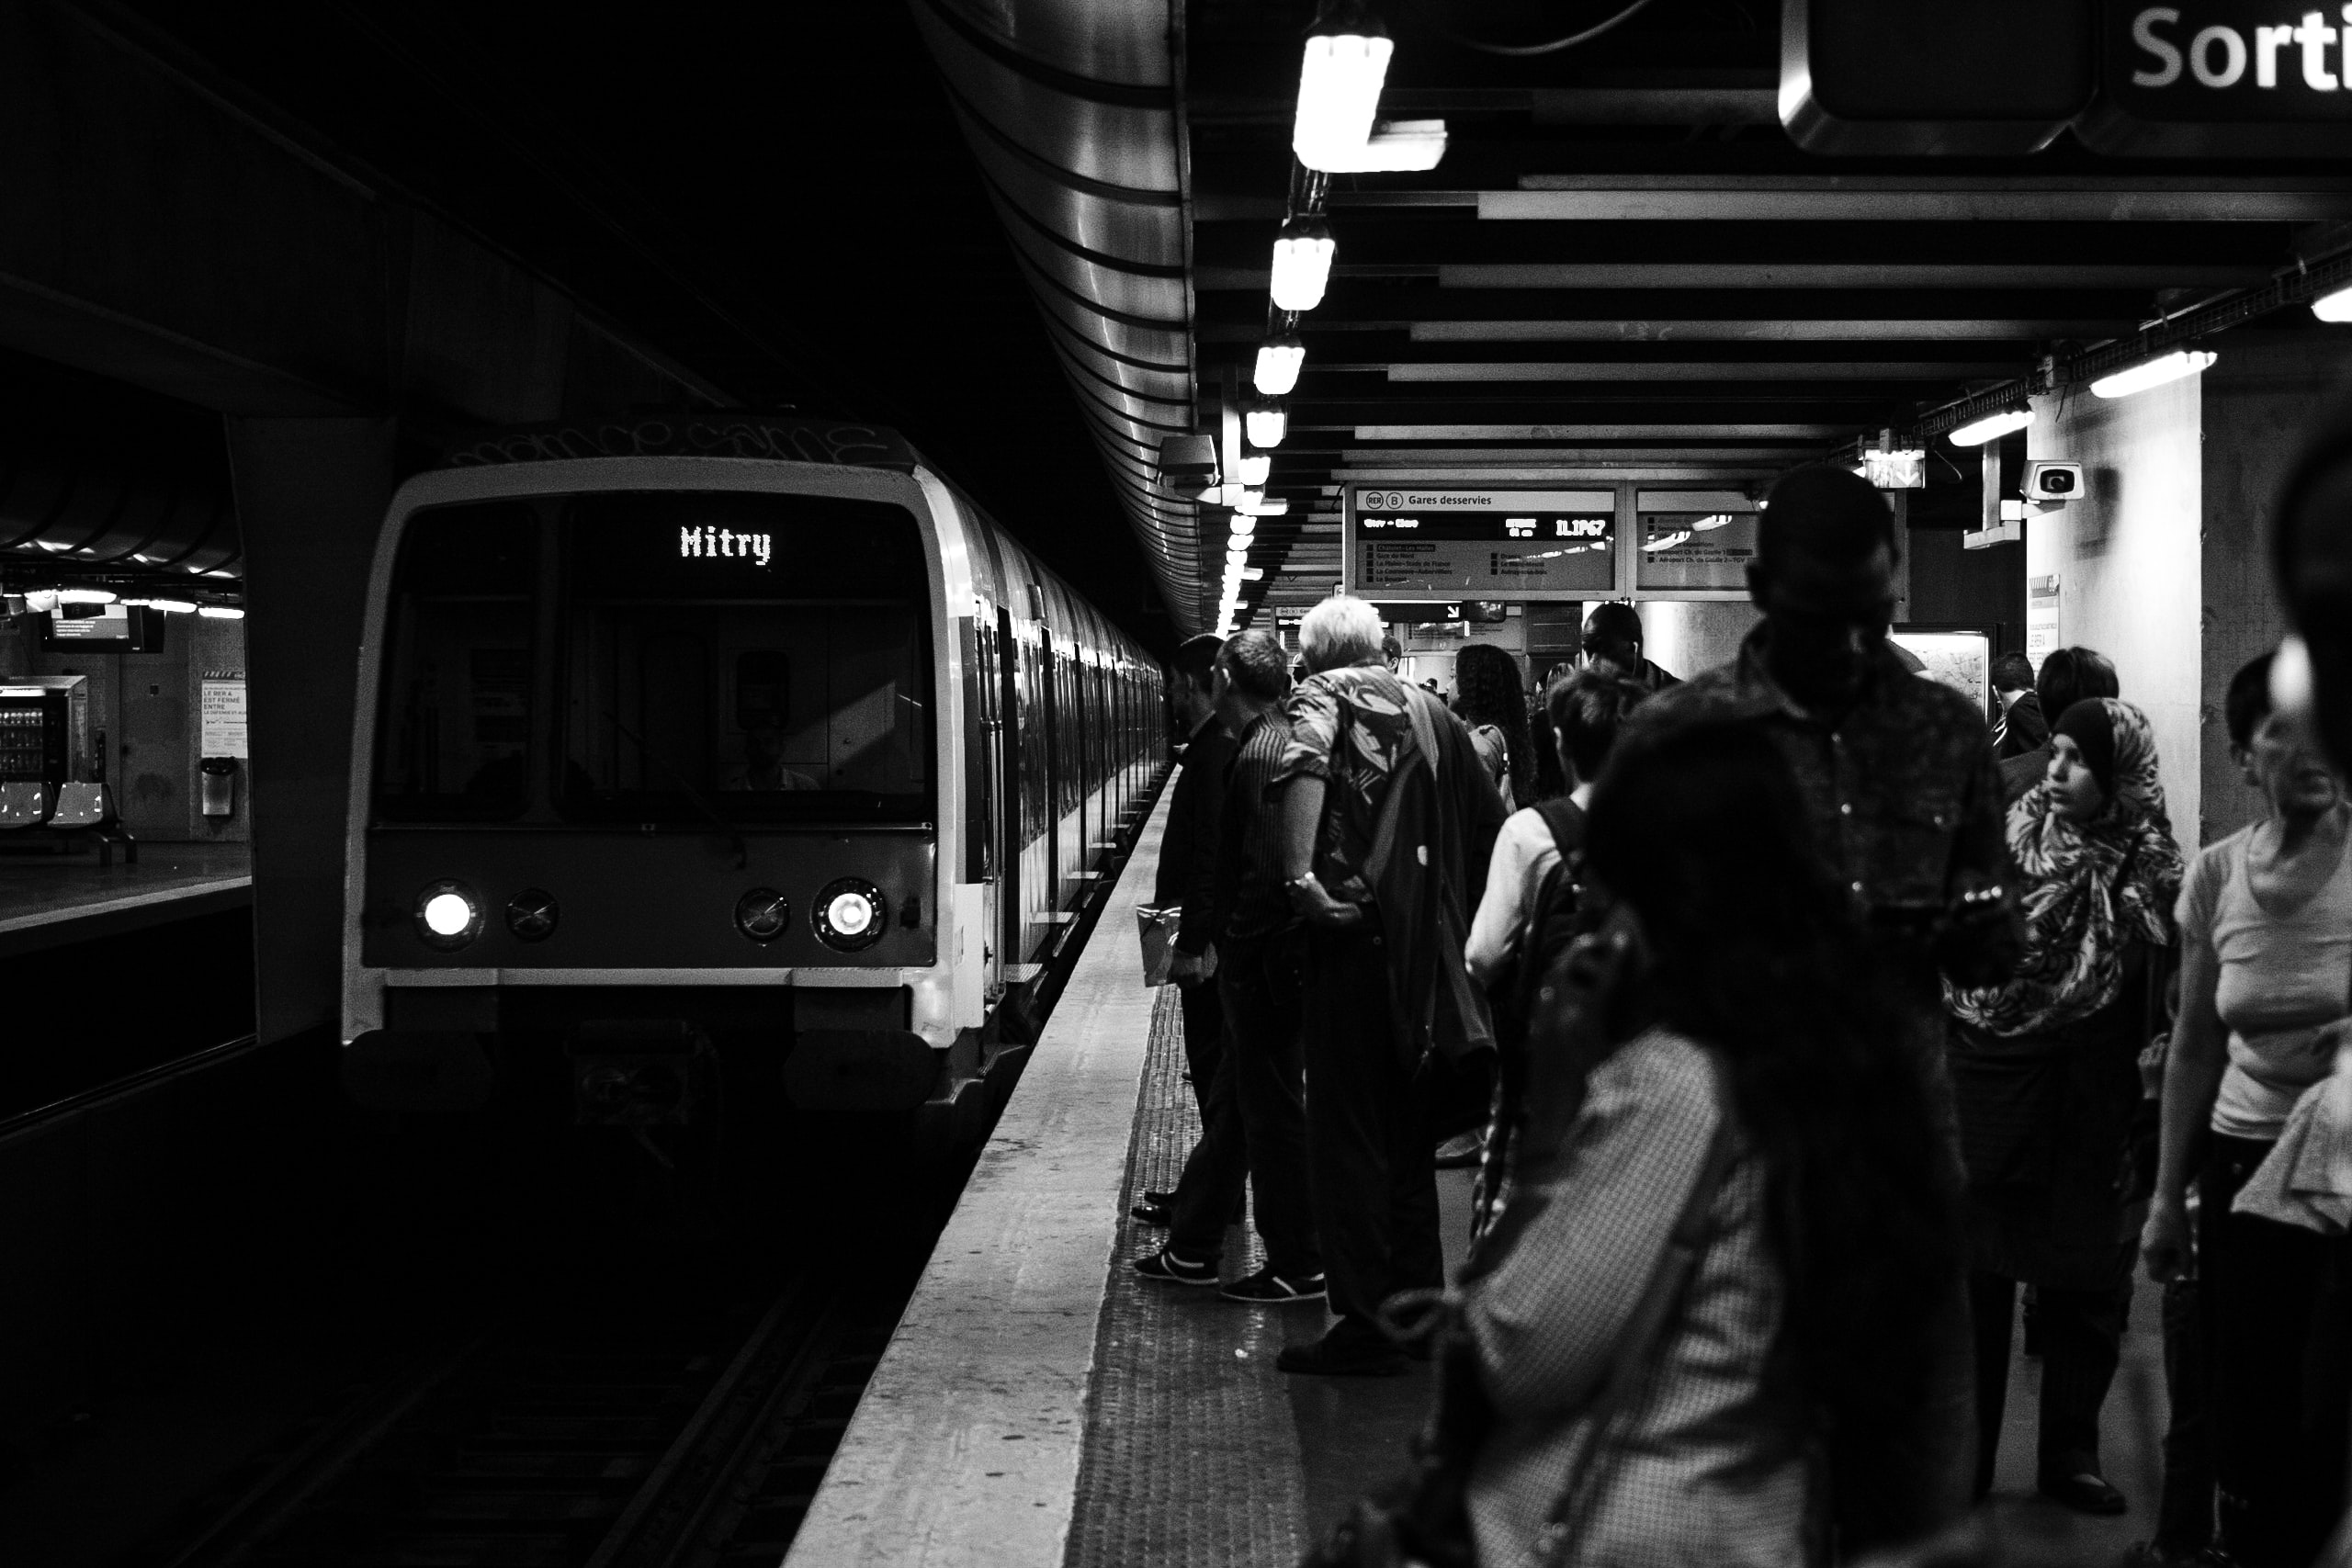 group of people waiting for the train in grayscale photography